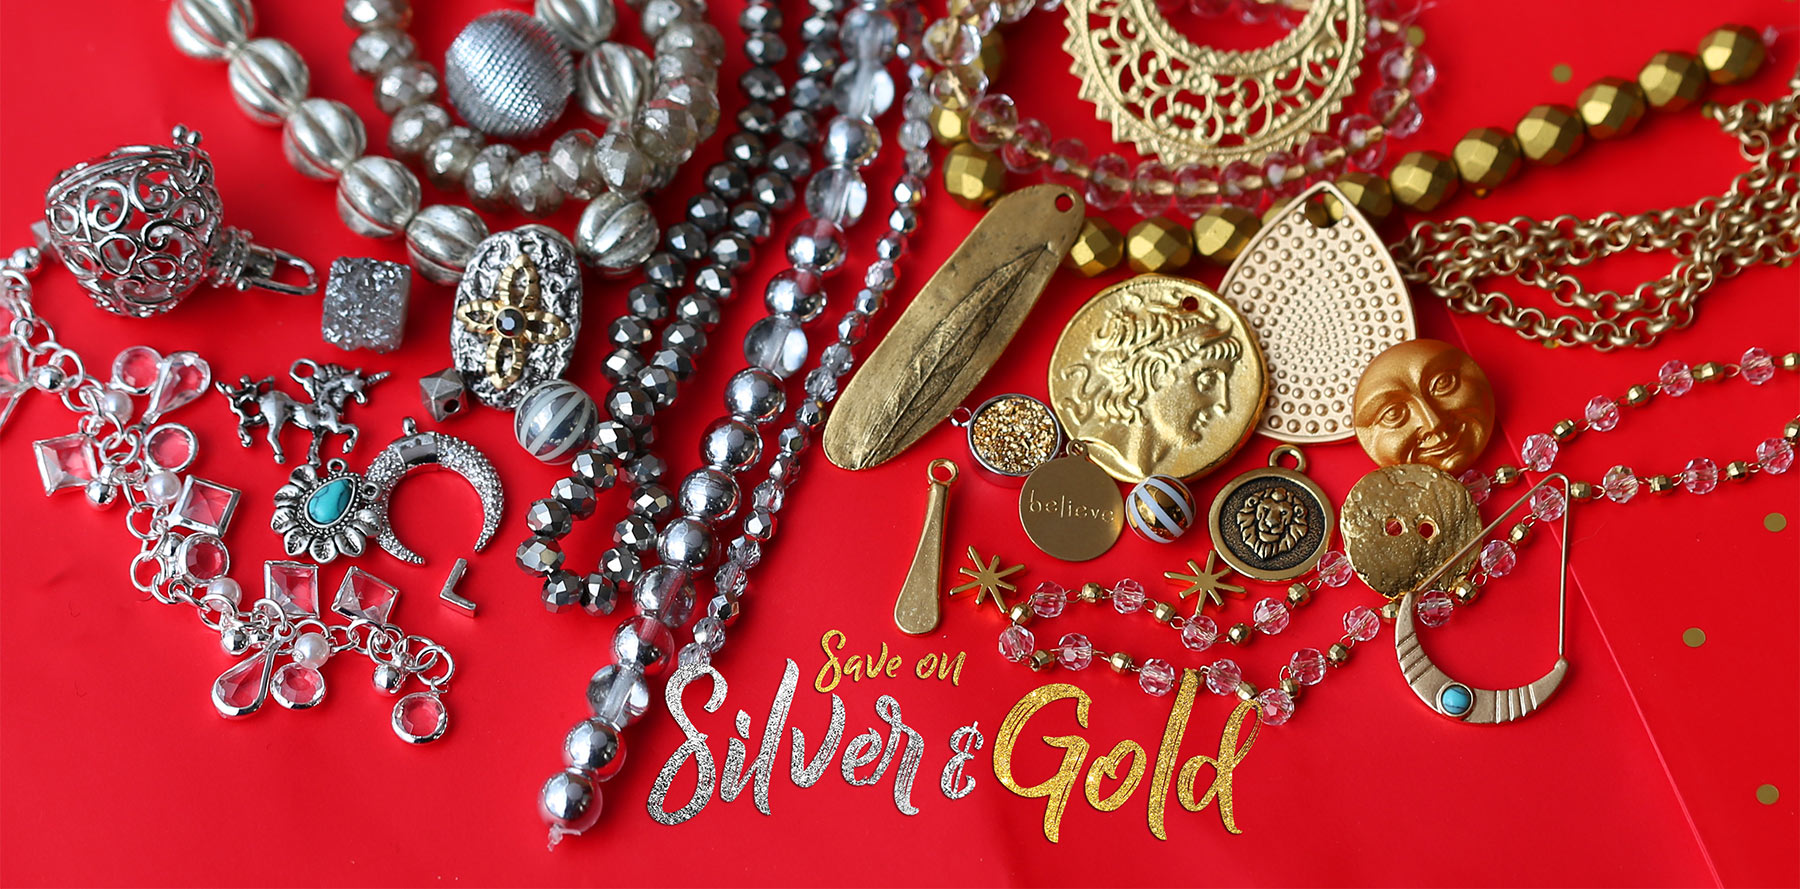 Silver & Gold Sale at Lima Beads